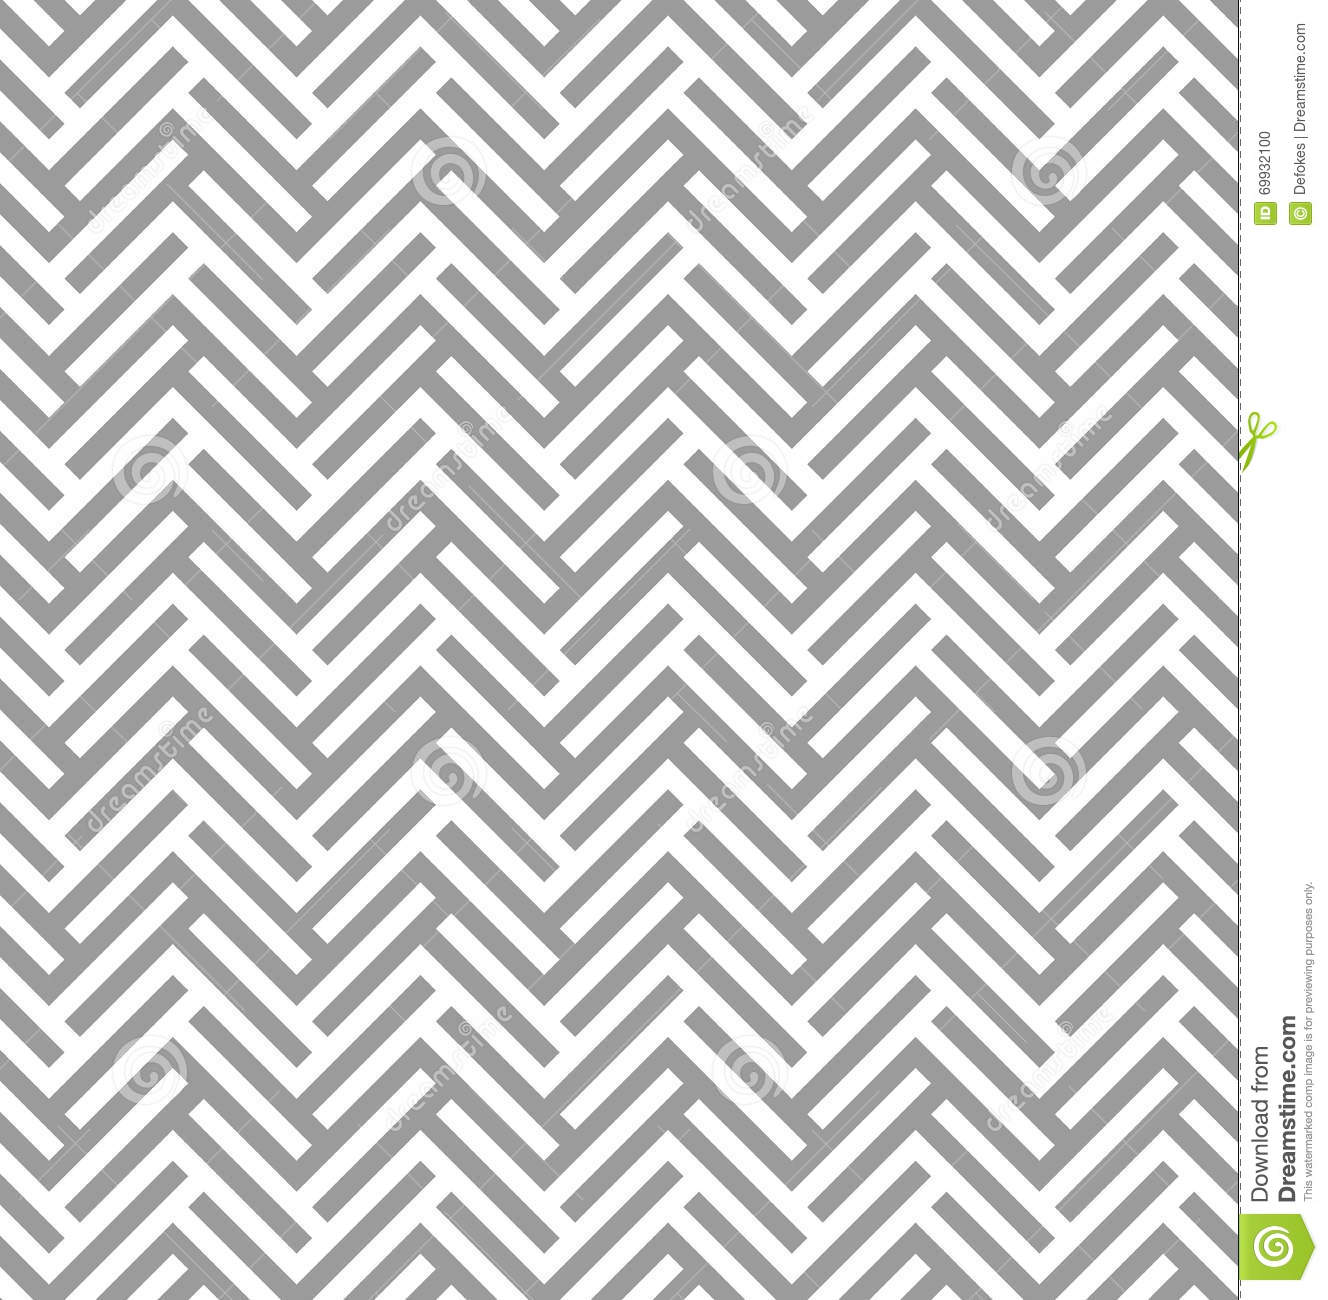 Modern Simple Geometric Fabric Texture With Repeating Parquet ... for Fabric Texture Pattern Modern  110ylc